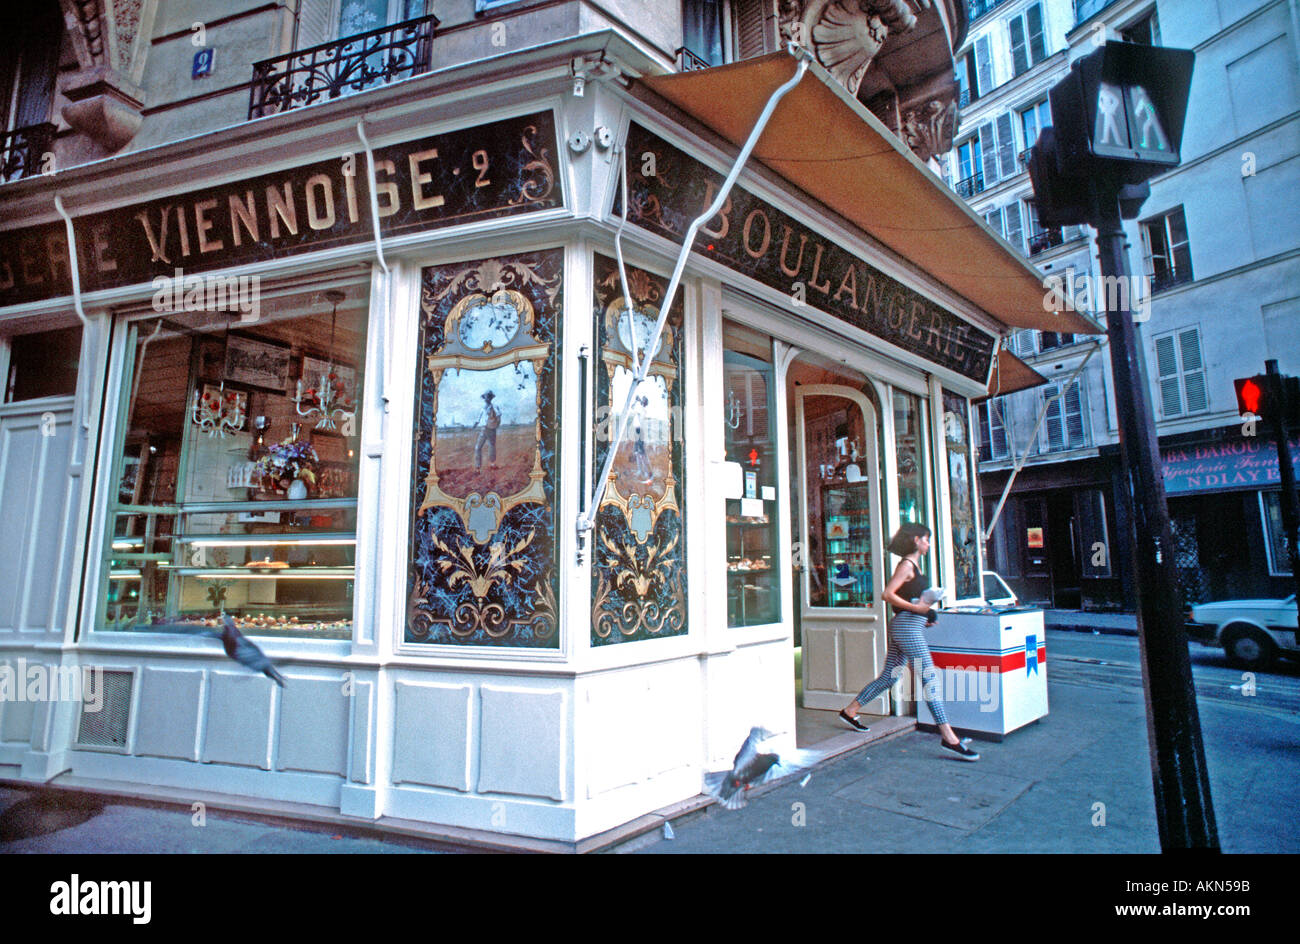 Old French Bakery Shop Paris France Boulangerie Patisserie Exterior Storefront Vintage Signs